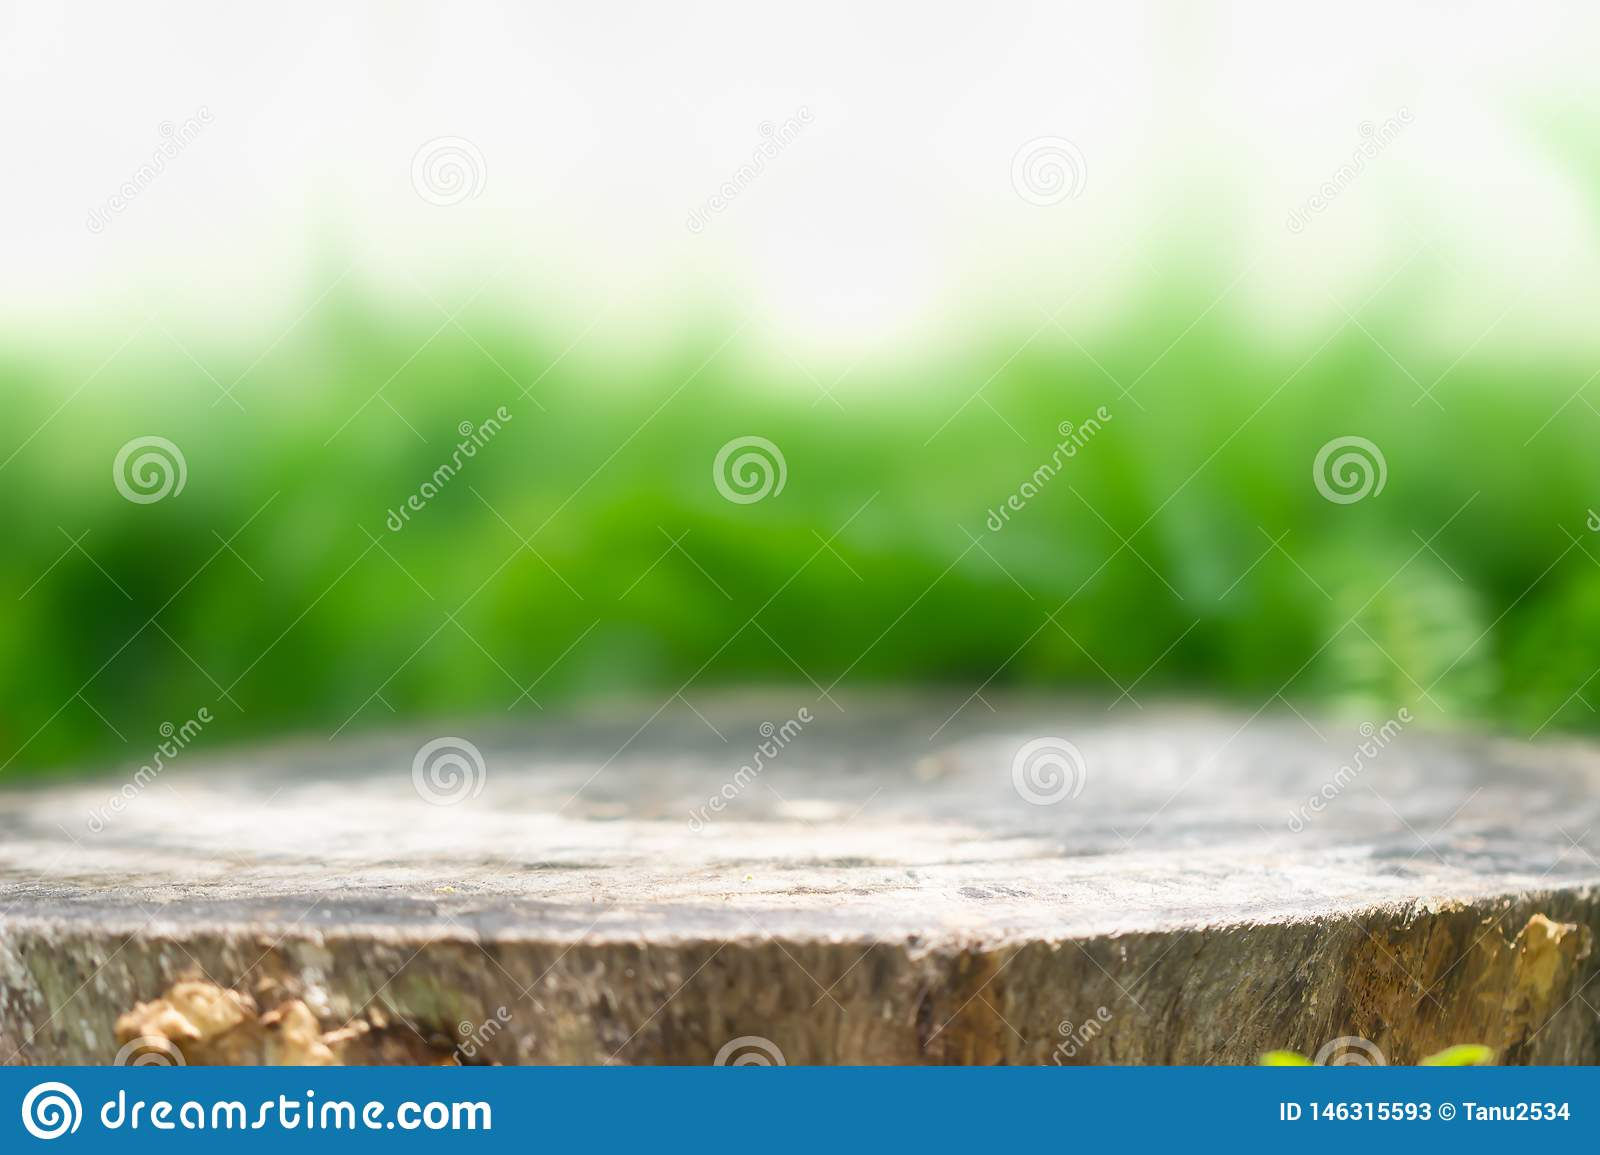 Tree stump for product display montages. Natural background.